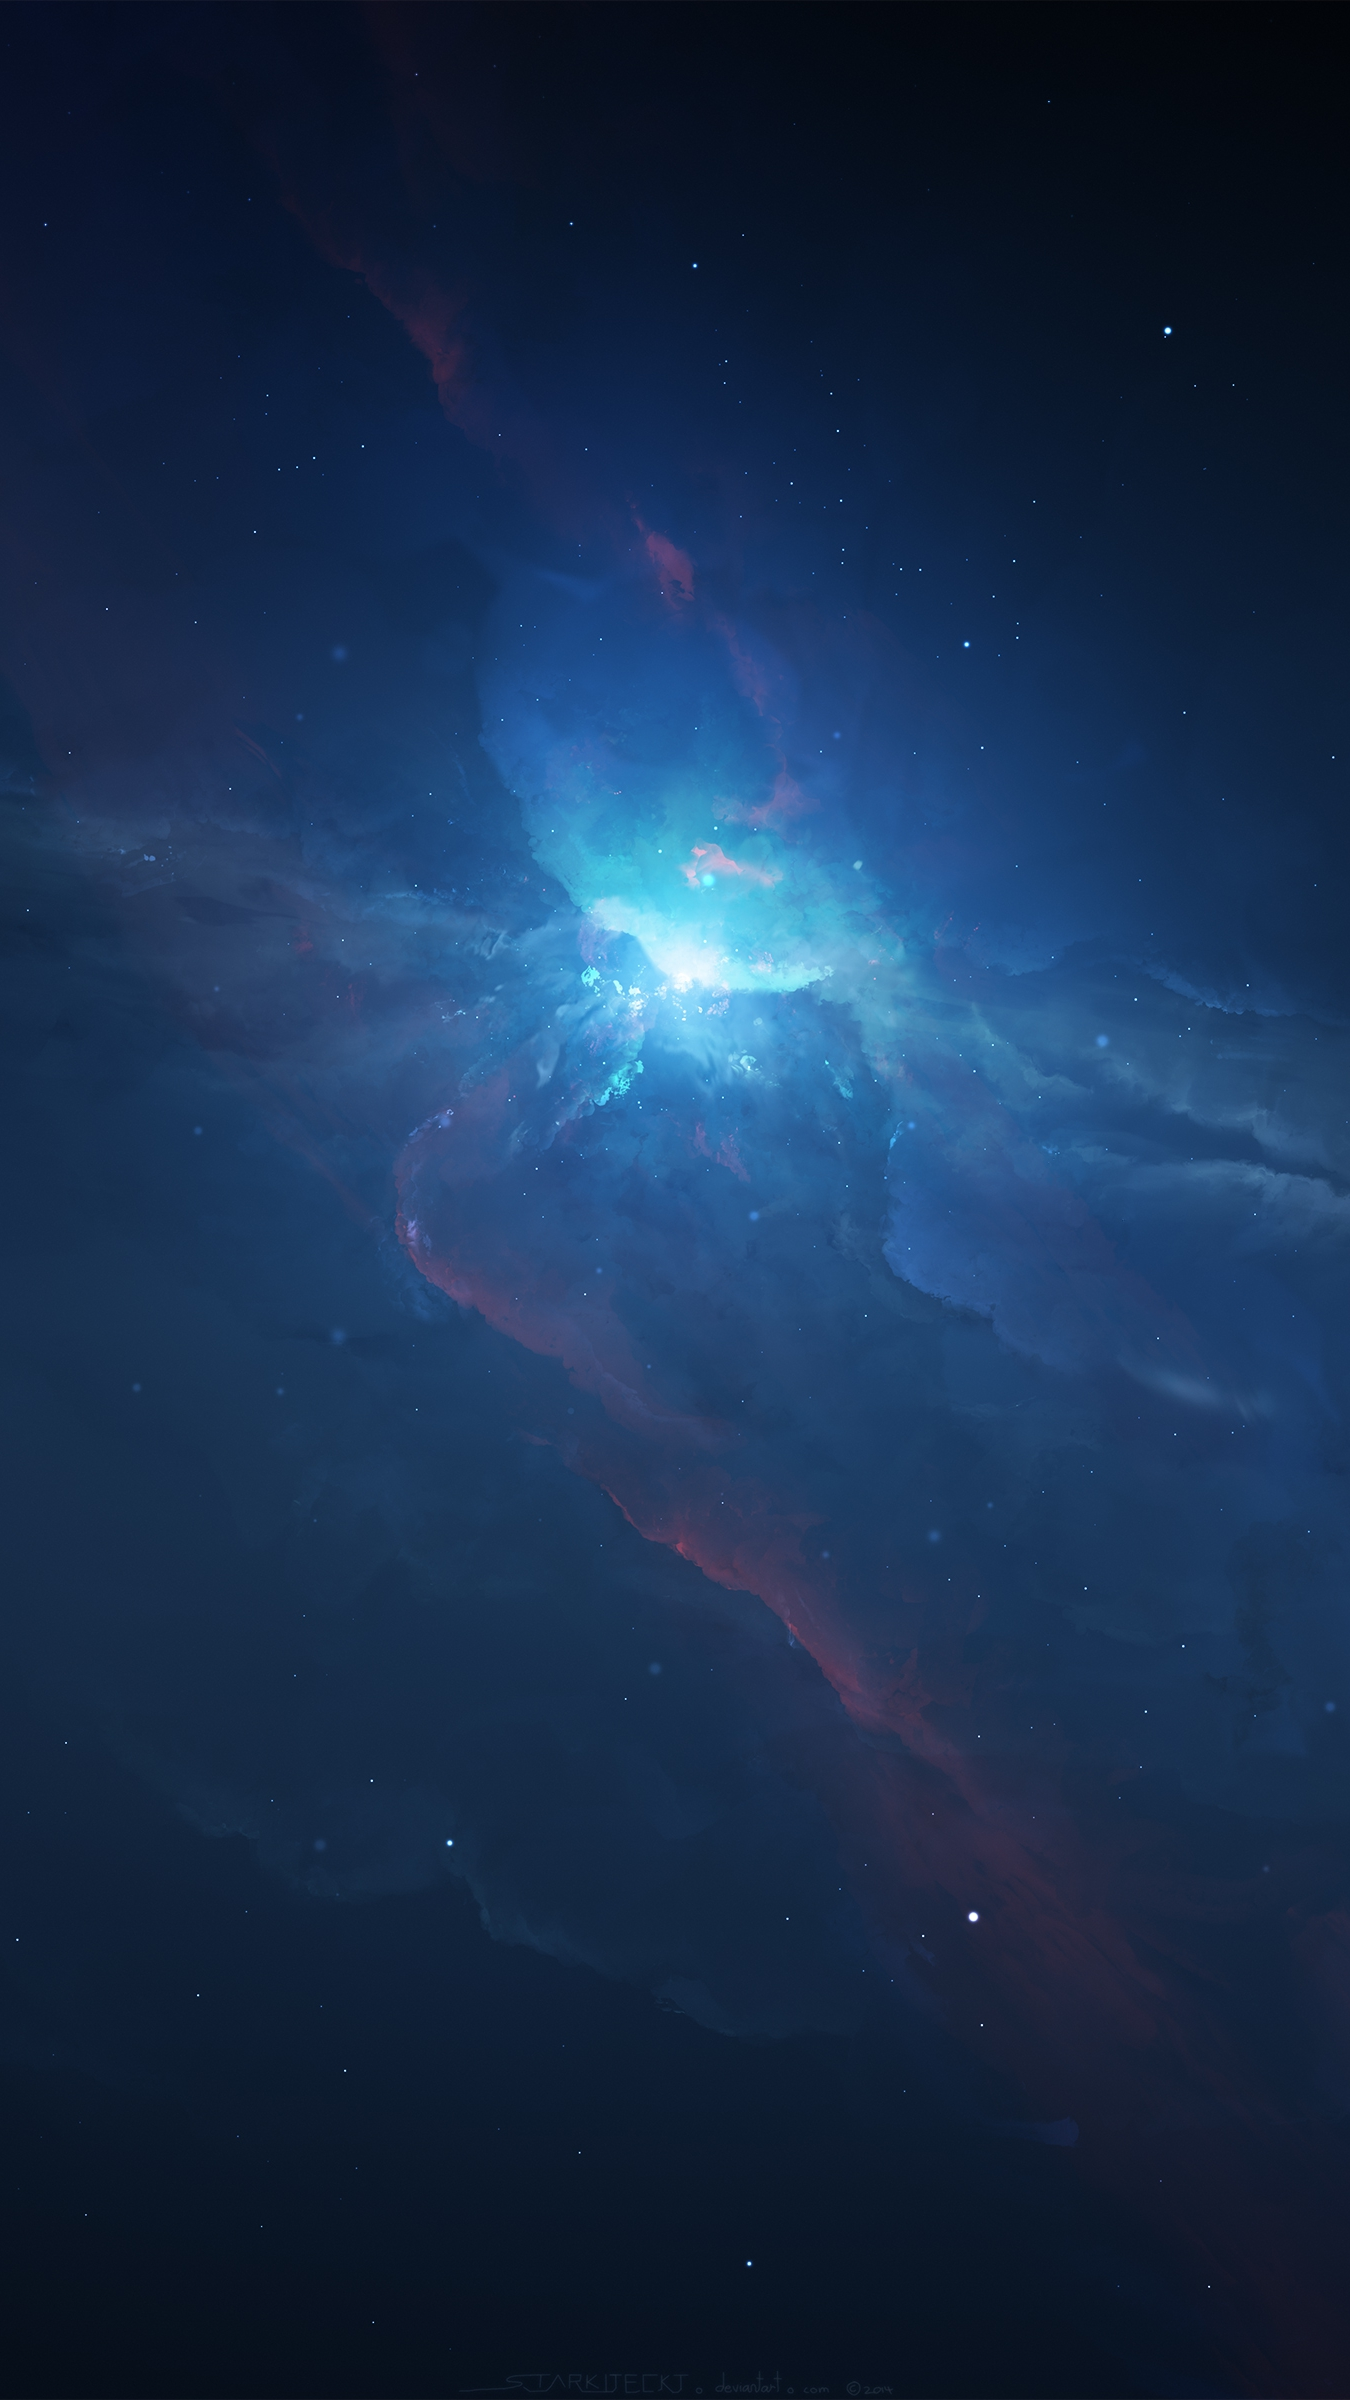 space-nebula-galaxy-stars-universe-iphone-wallpaper - iphone wallpapers